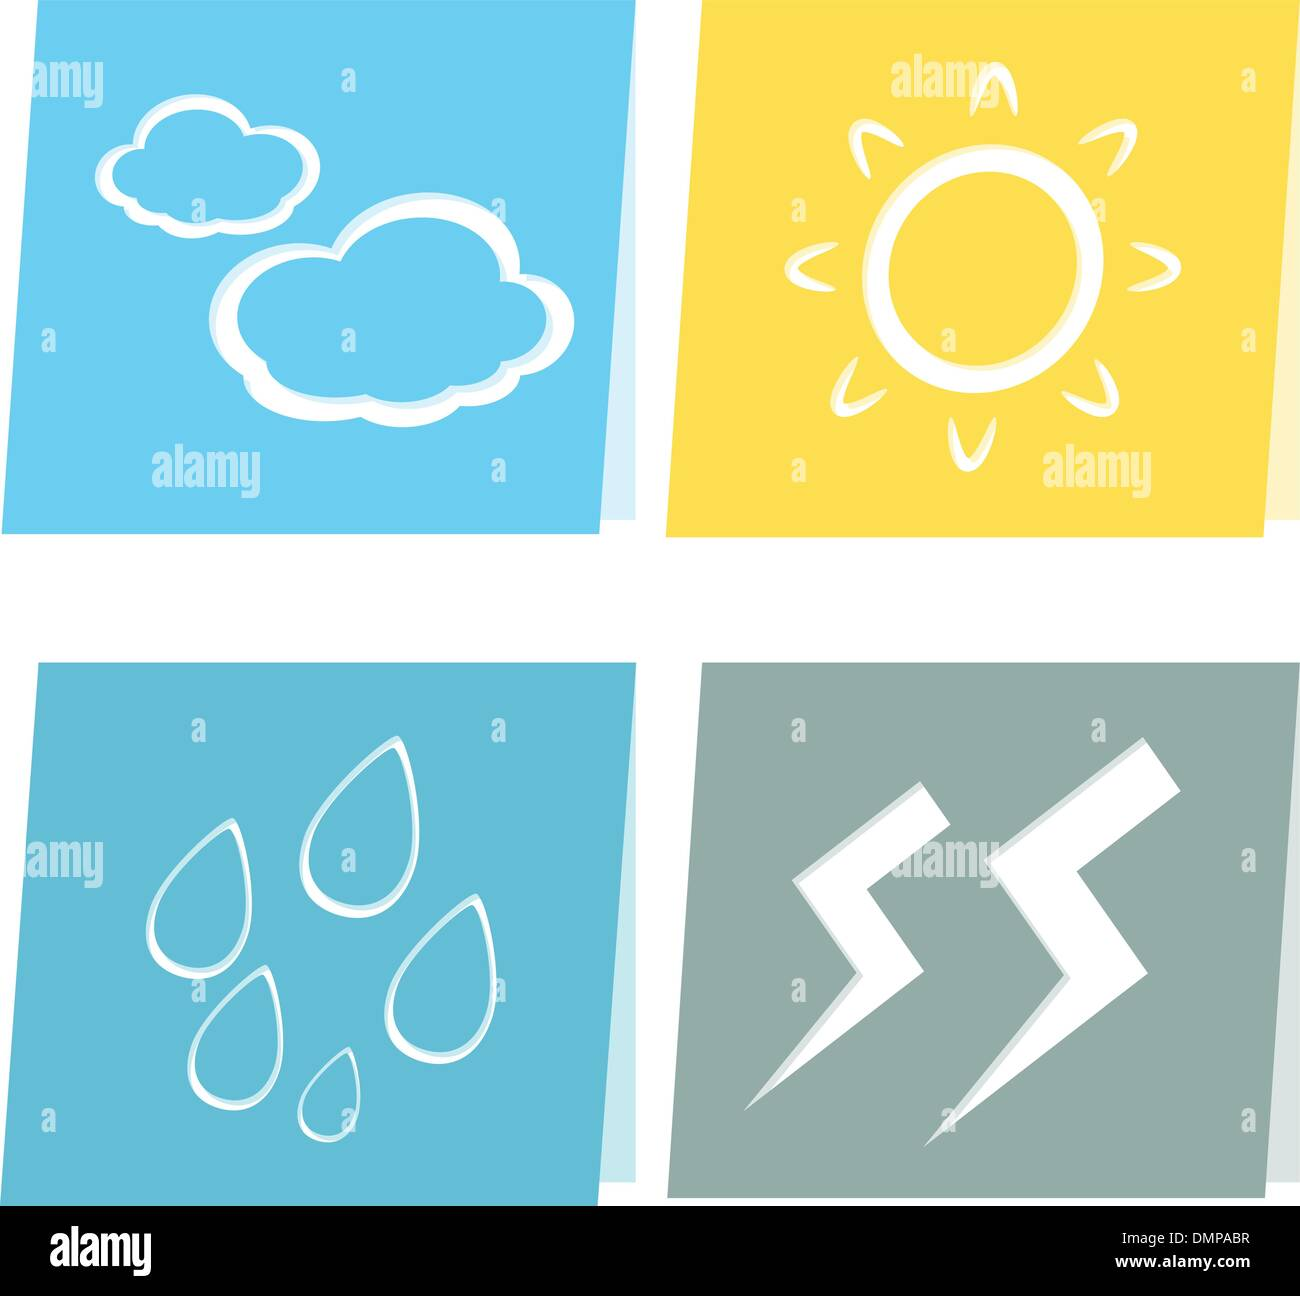 weather icon illustration - Stock Vector